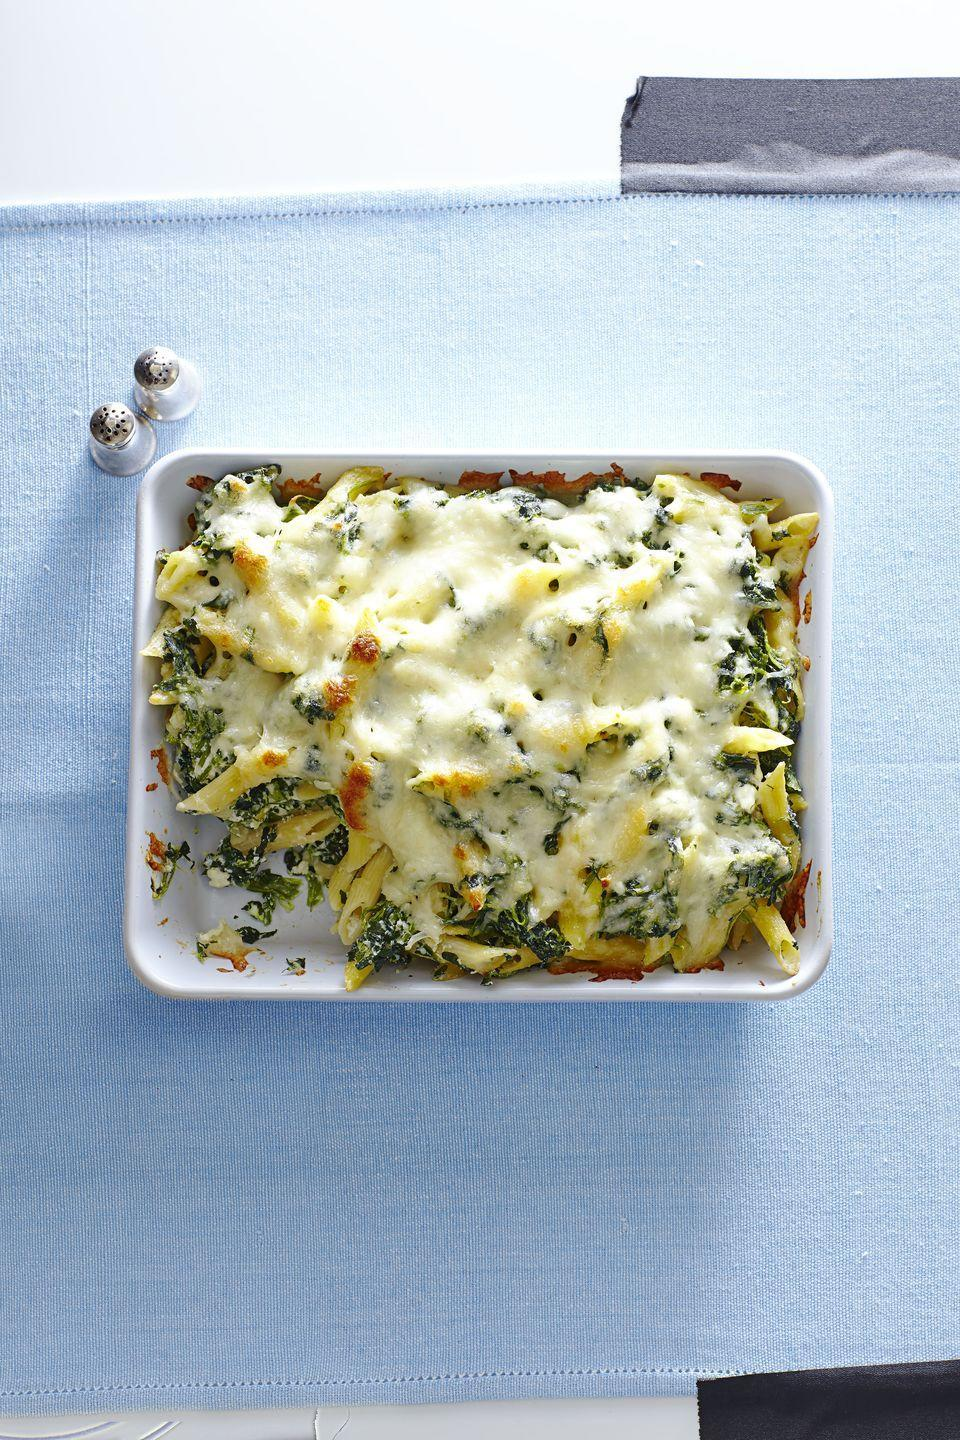 "<p>For a tasty take on the classic spinach pie, swap in pasta for pastry and top with a decadent layer of melty cheese.</p><p><em><a href=""https://www.goodhousekeeping.com/food-recipes/easy/a35780/spanakopita-penne-bake/"" rel=""nofollow noopener"" target=""_blank"" data-ylk=""slk:Get the recipe for Spanakopita Penne Bake »"" class=""link rapid-noclick-resp"">Get the recipe for Spanakopita Penne Bake »</a></em> </p><p><strong>RELATED: </strong><a href=""https://www.goodhousekeeping.com/food-recipes/healthy/g908/vegetarian-recipes/"" rel=""nofollow noopener"" target=""_blank"" data-ylk=""slk:46 Hearty Vegetarian Recipes for the Whole Family"" class=""link rapid-noclick-resp"">46 Hearty Vegetarian Recipes for the Whole Family </a></p>"